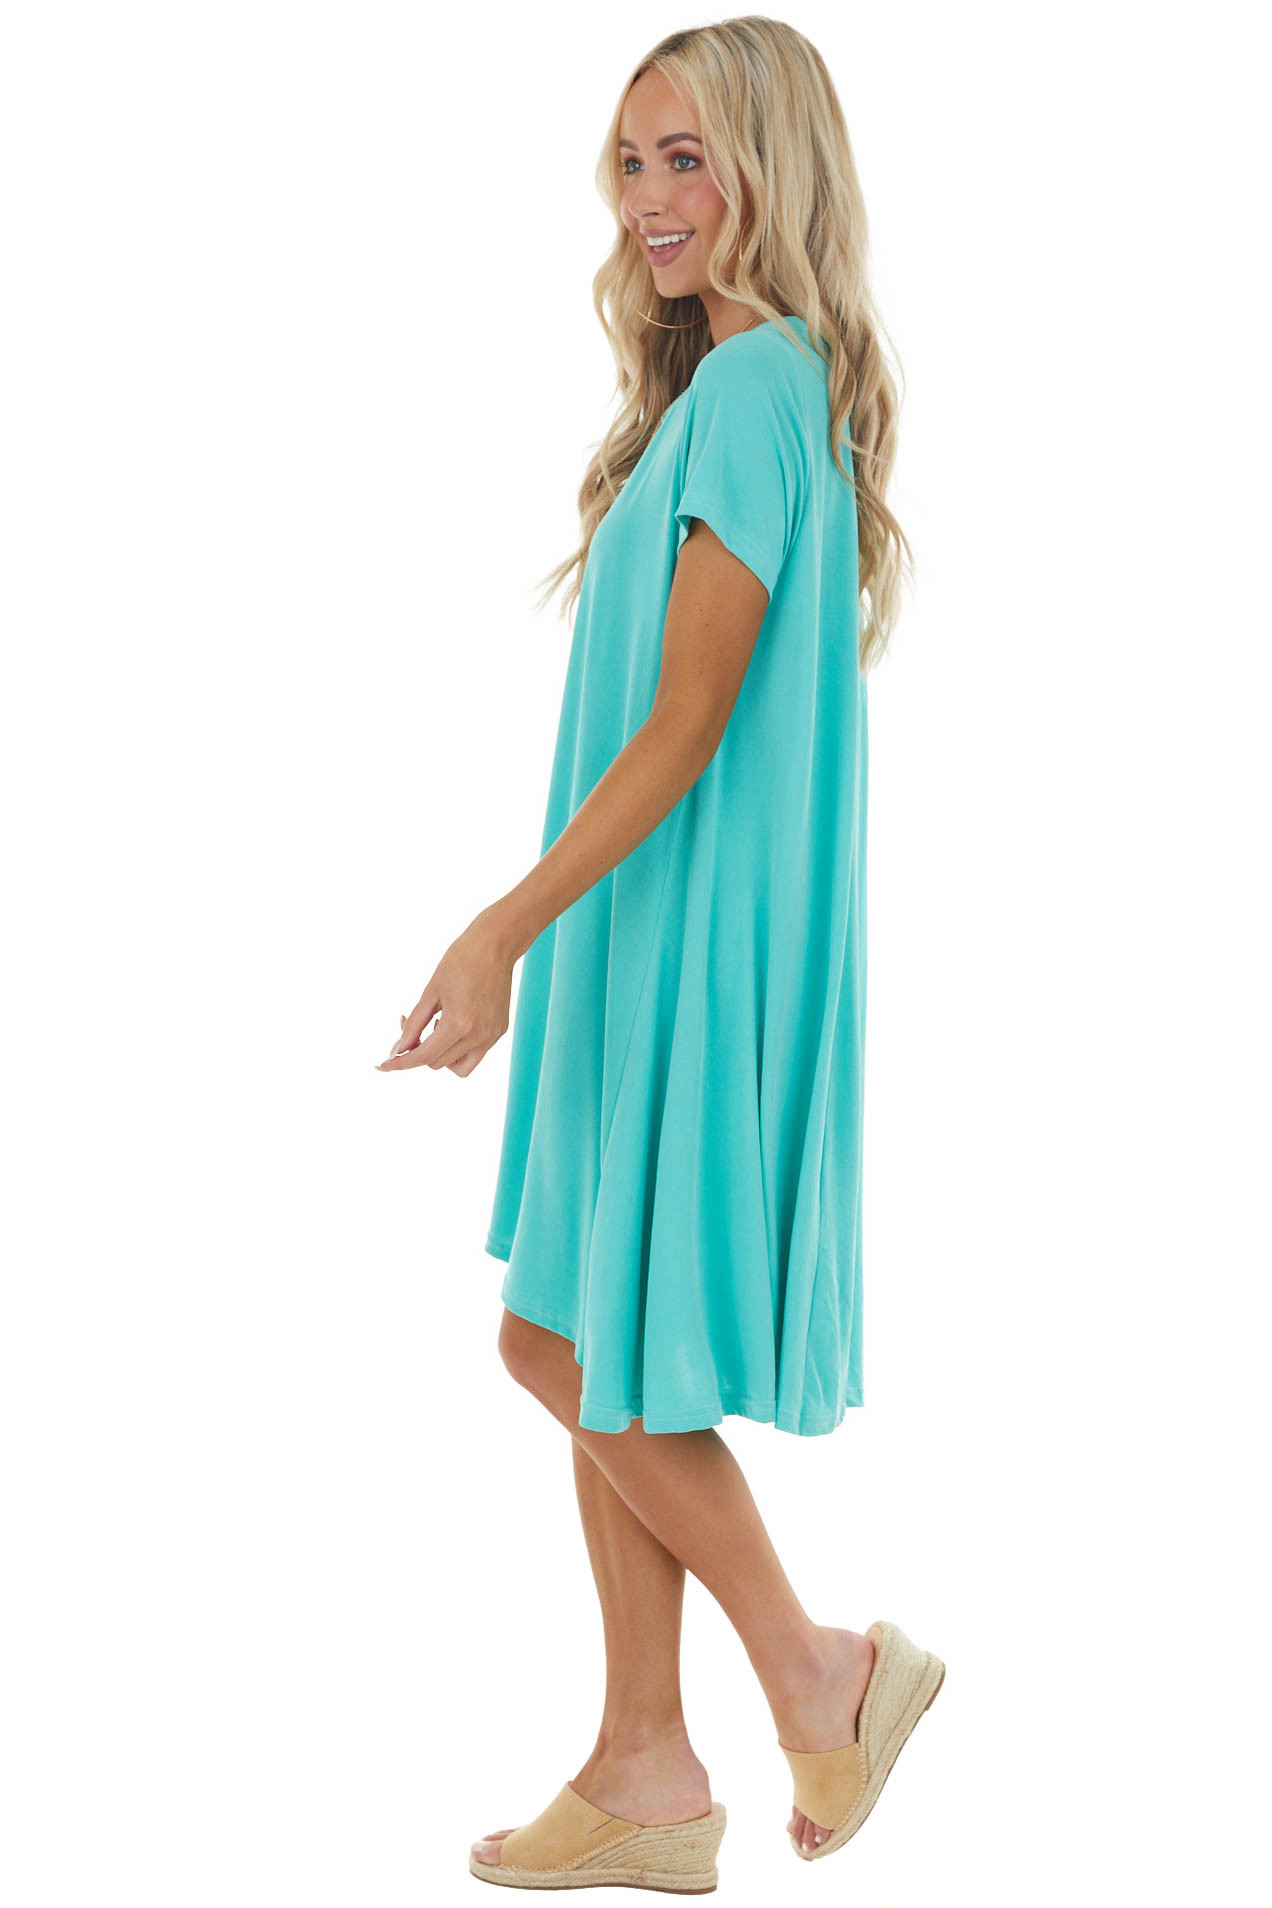 Aqua Stretchy Knit Short Swing Dress with Short Sleeves